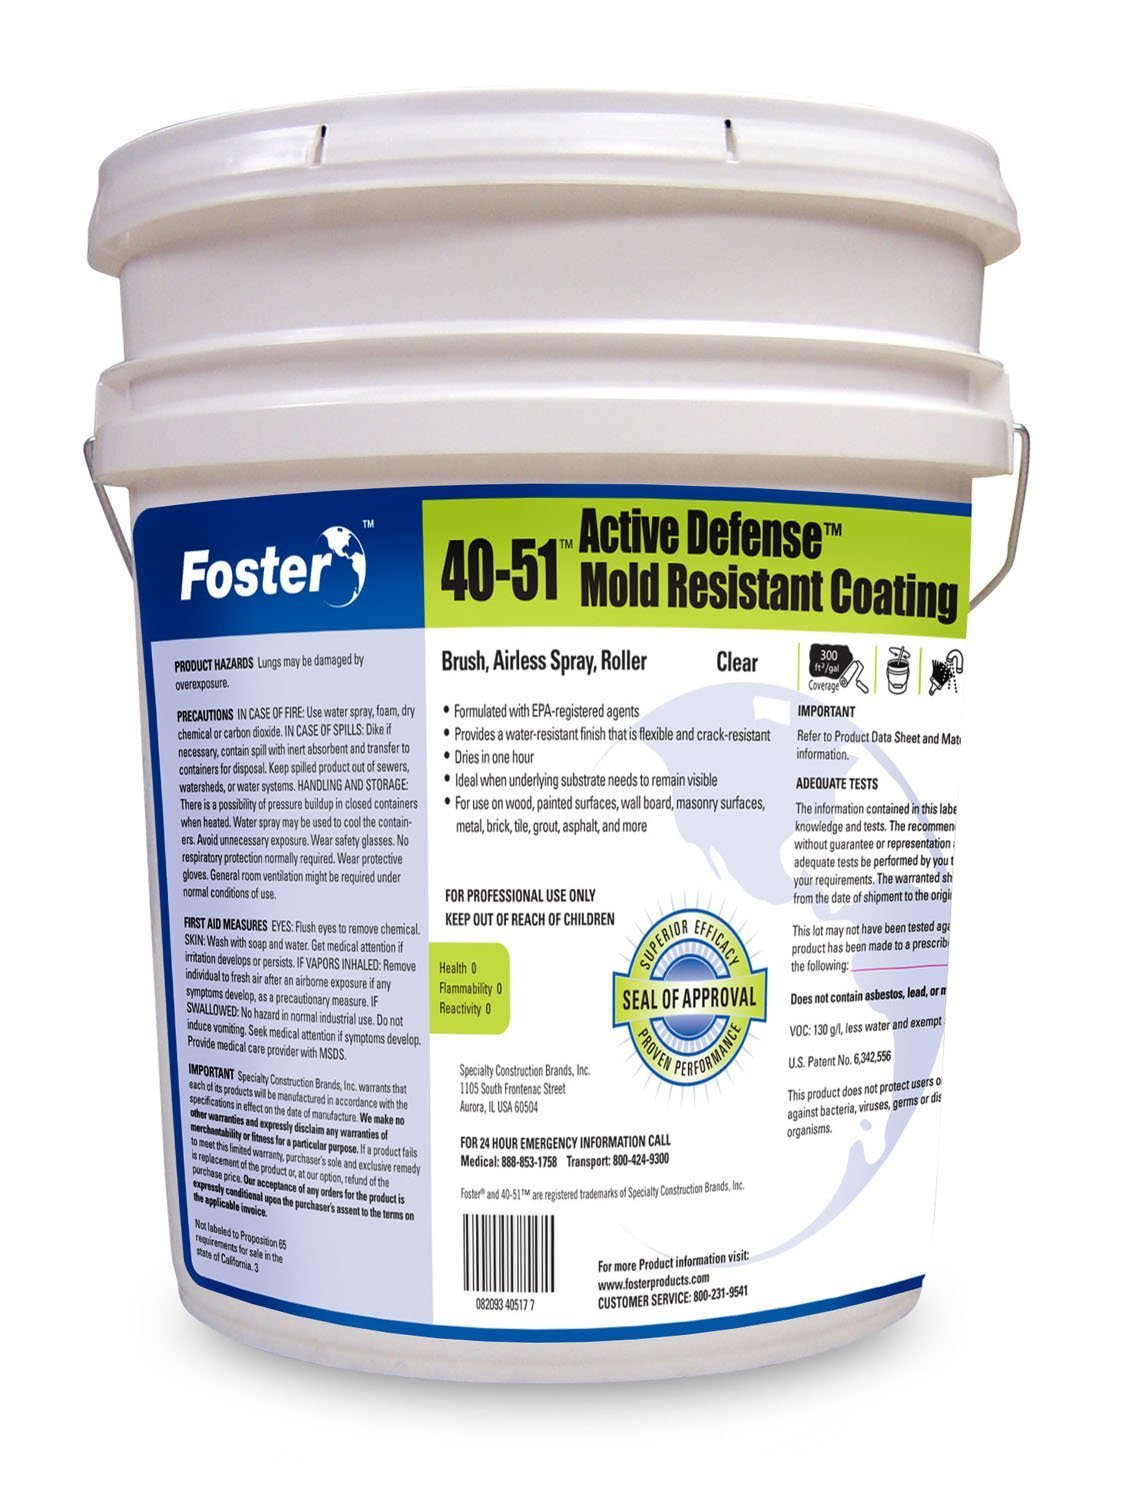 Foster Products - 40-51 - Sheer Defense - Mold Resistant Clear Coat - 5 Gallon Pail by Foster Products